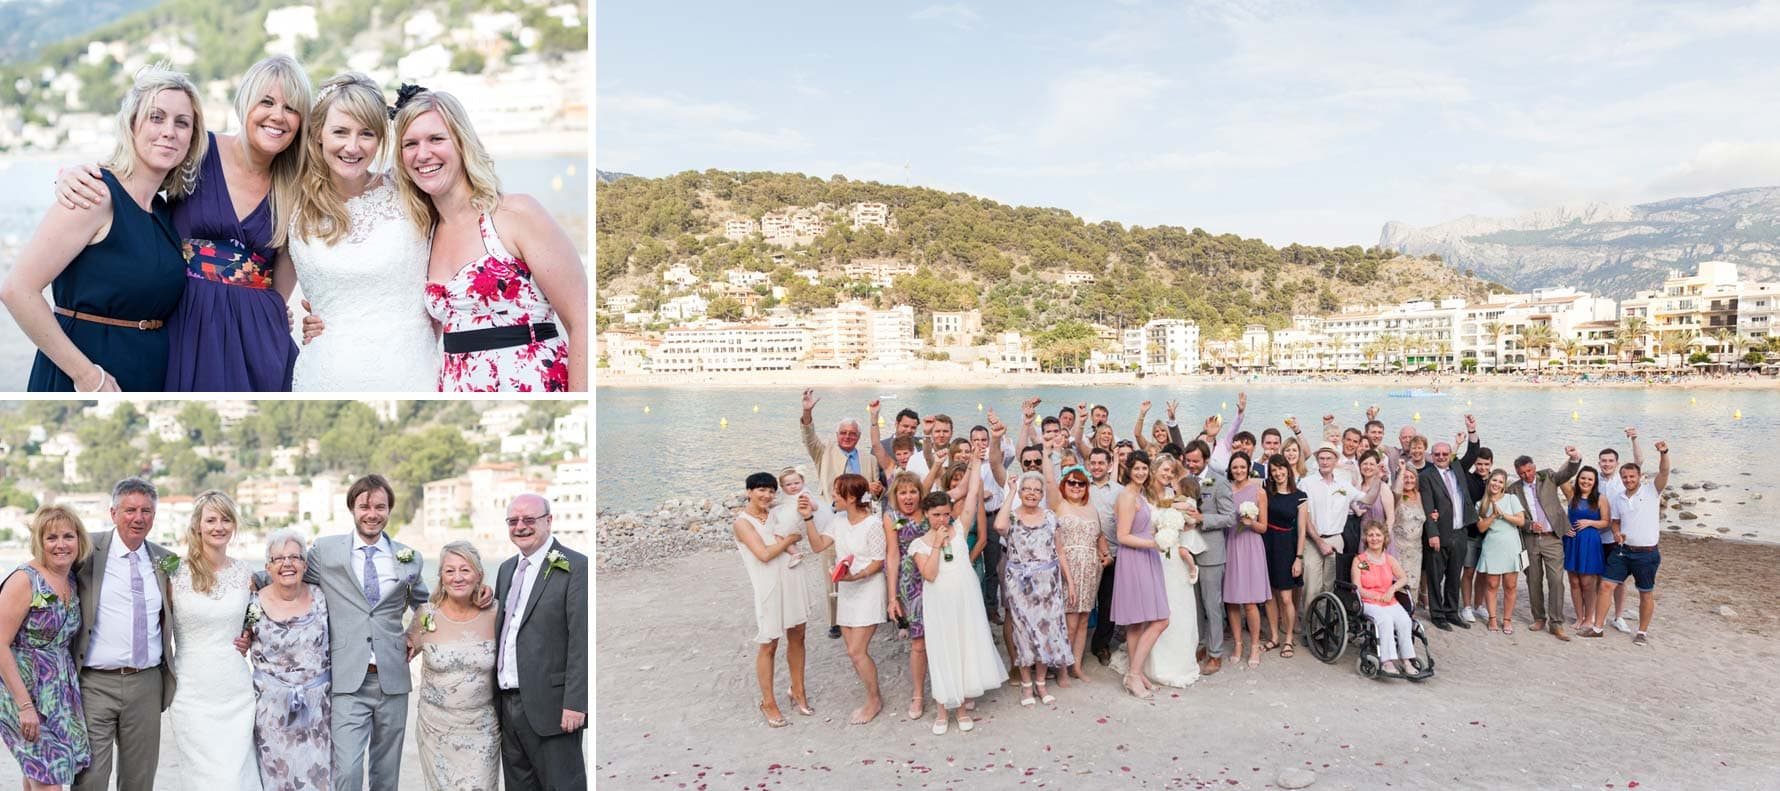 Group photos by Mallorca wedding photographer in Port de Soller